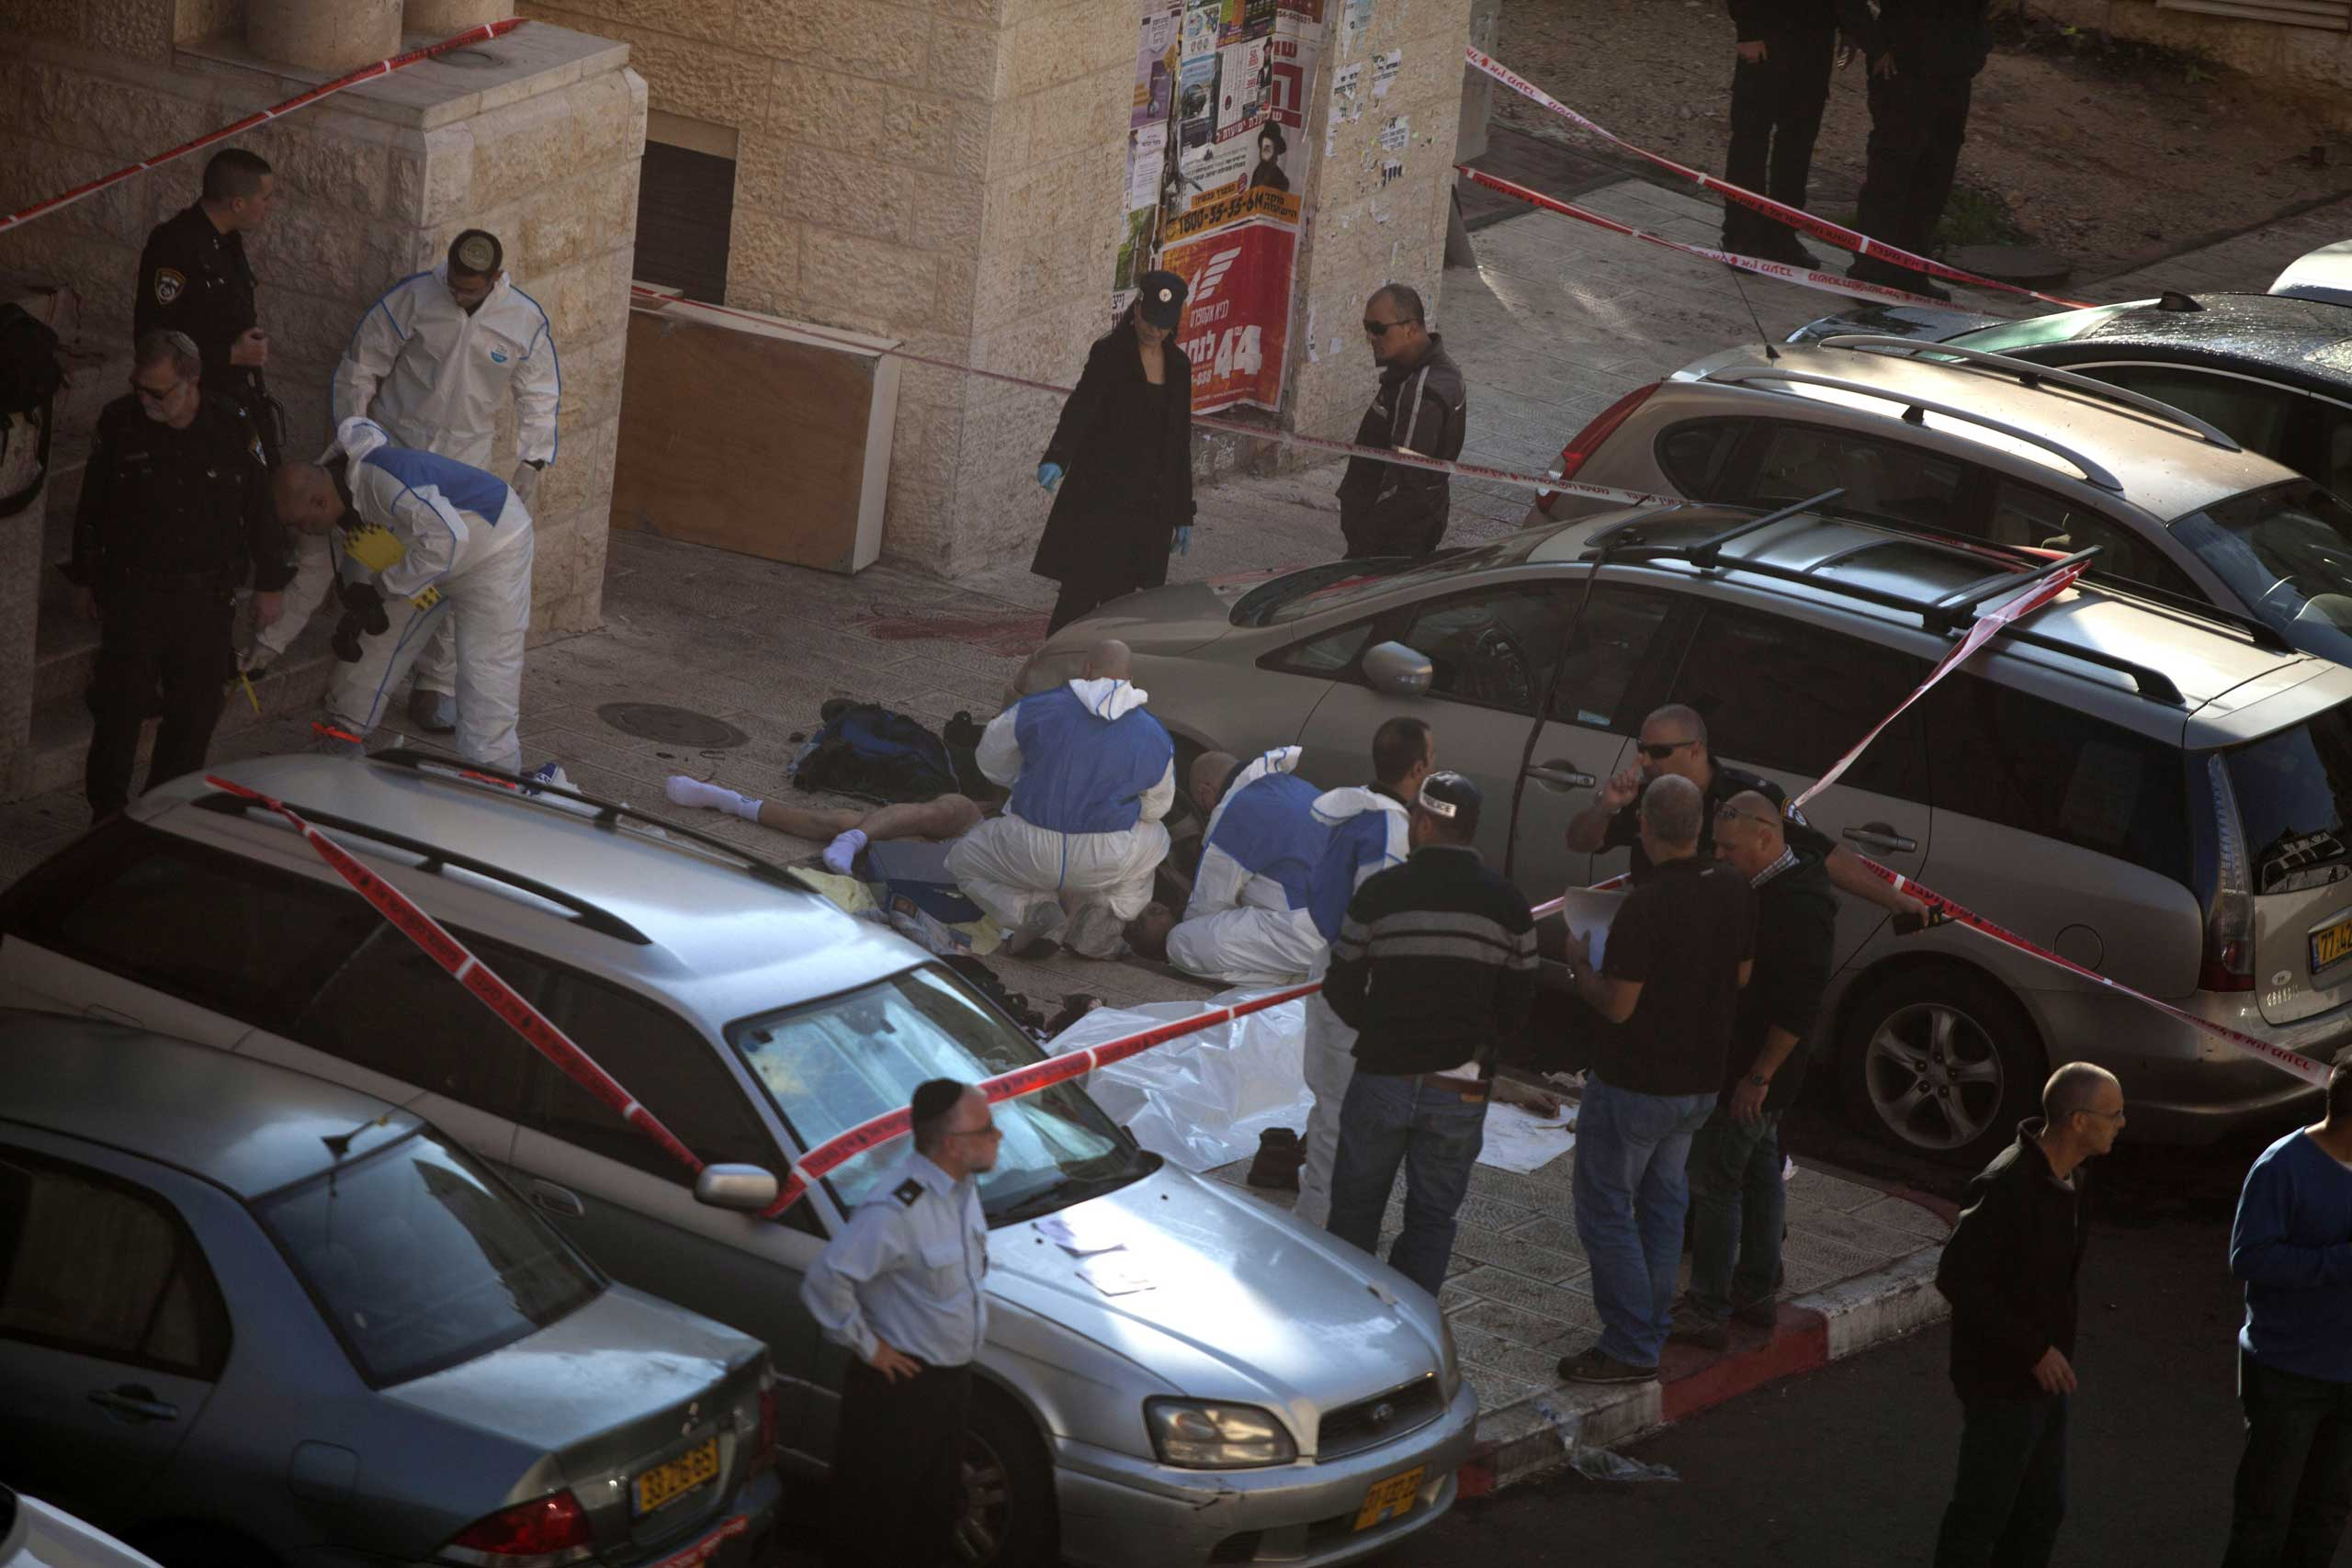 Israeli police crime scene investigators stand near bodies of suspected attackers outside a synagogue in Jerusalem on Nov. 18, 2014.